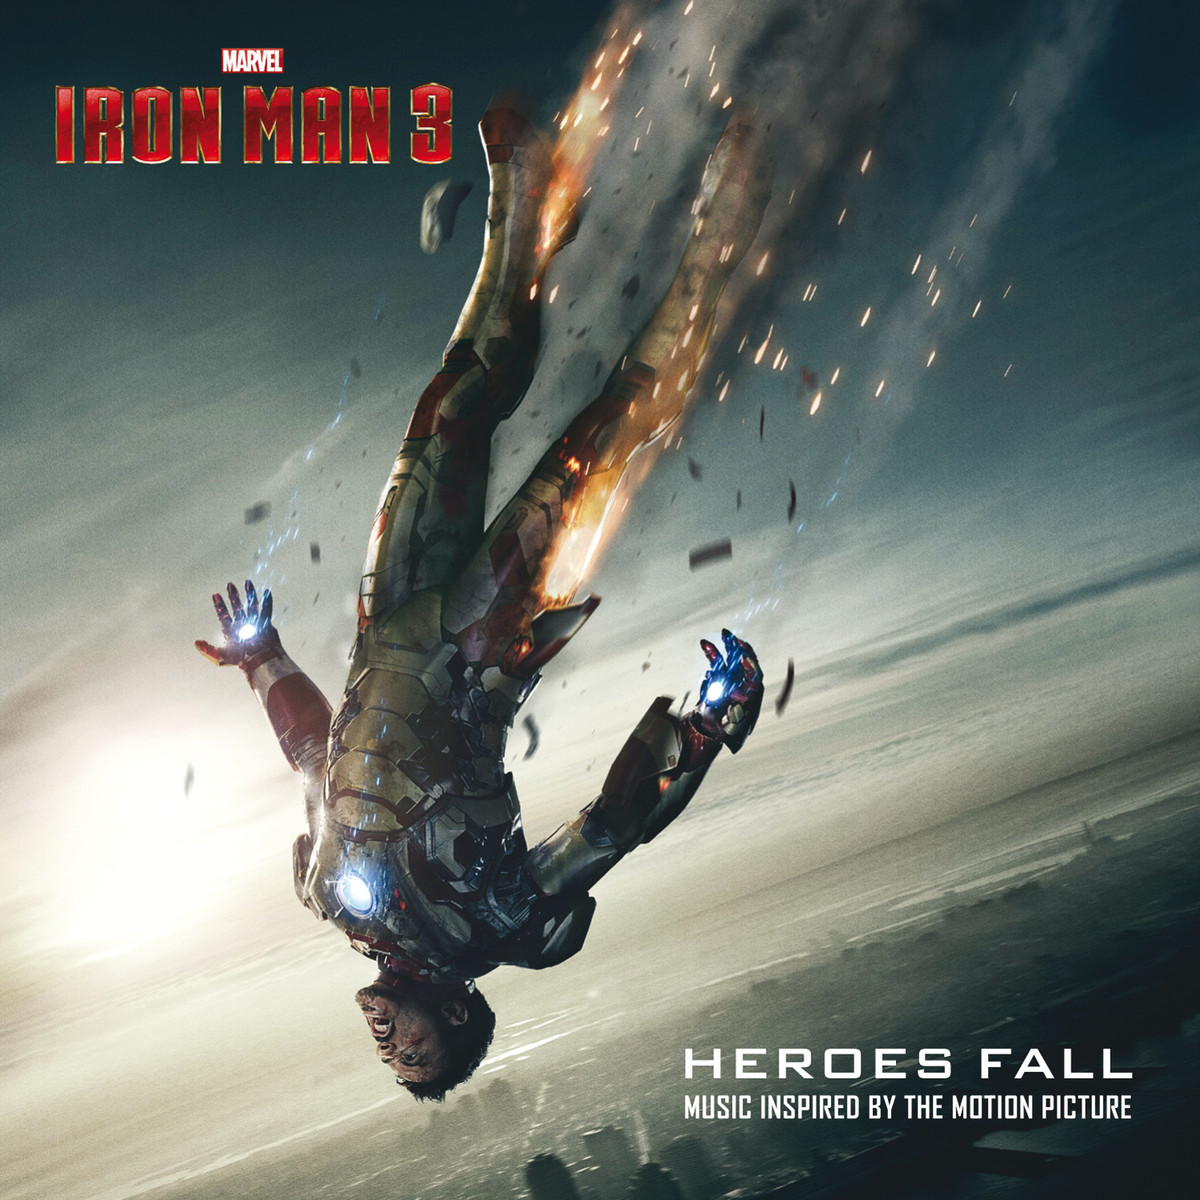 Iron-Man-3-Heroes-Fall-Music-Inspired-by-the-Motion-Picture-2013